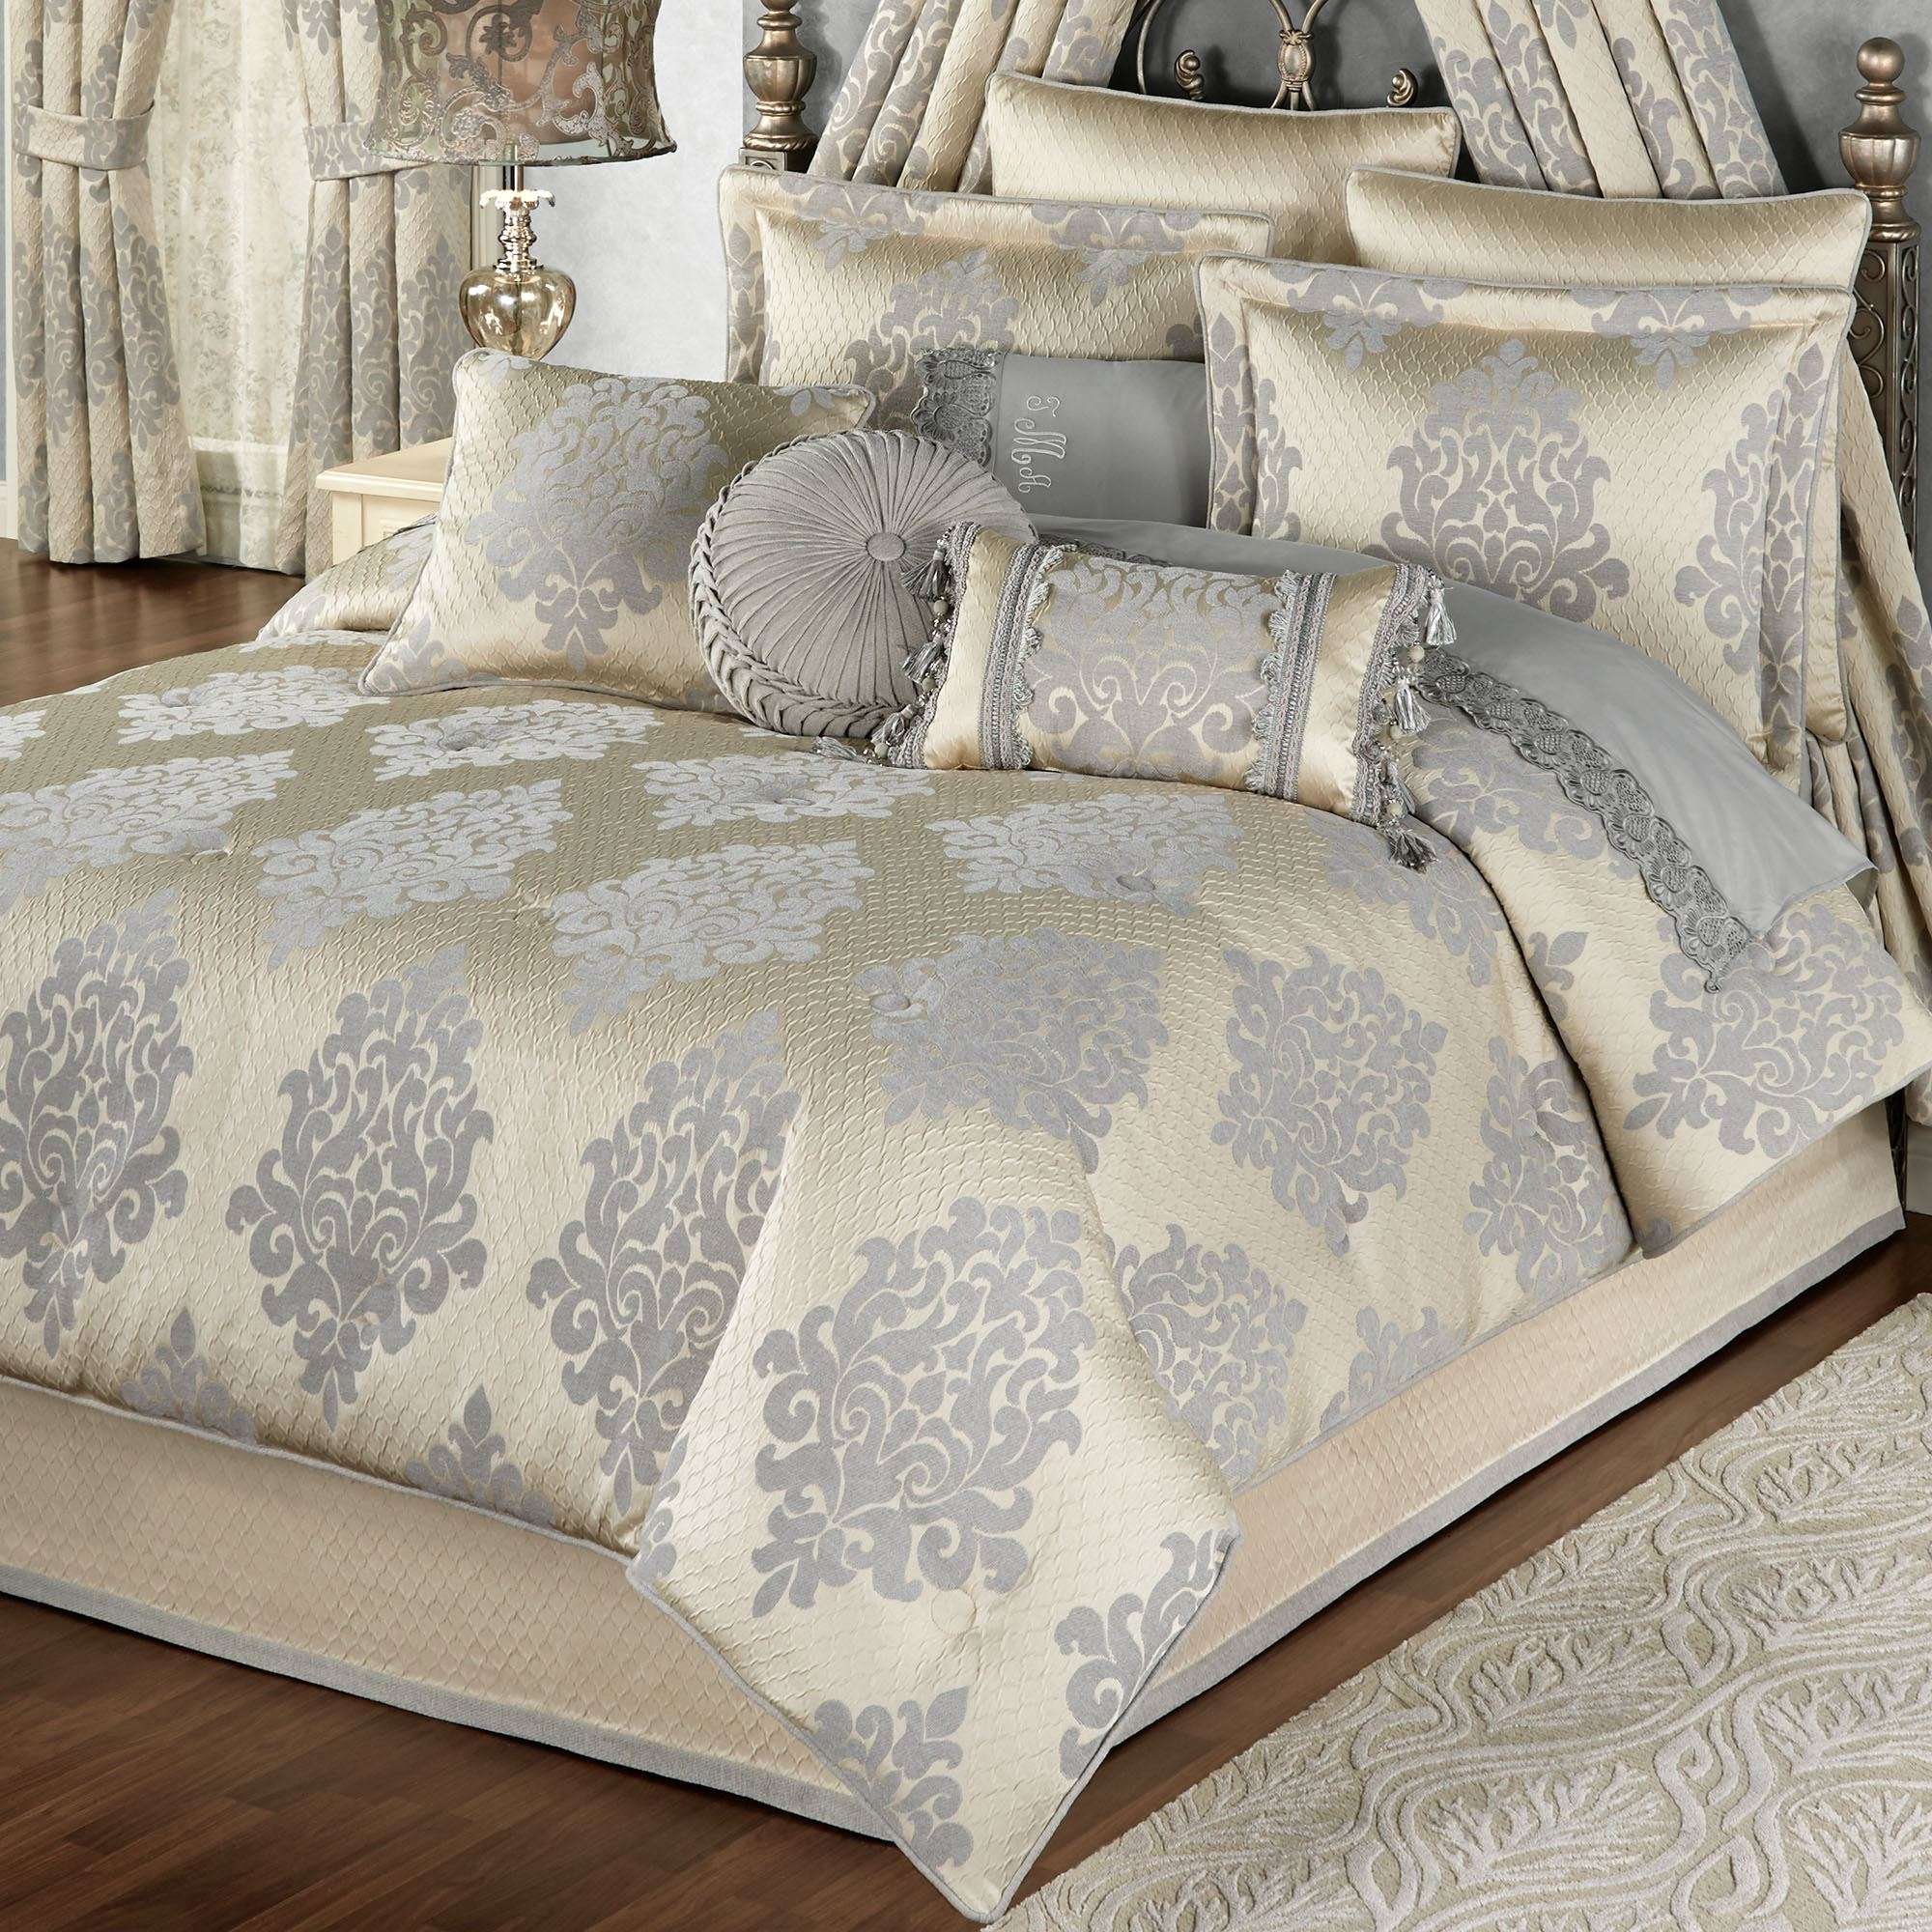 decorations comforter oversized comforters suede spanish class country size clearance bedding touch large decoration style in miami quilts of bath queen set stores king christmas bedspreads bed sets extra